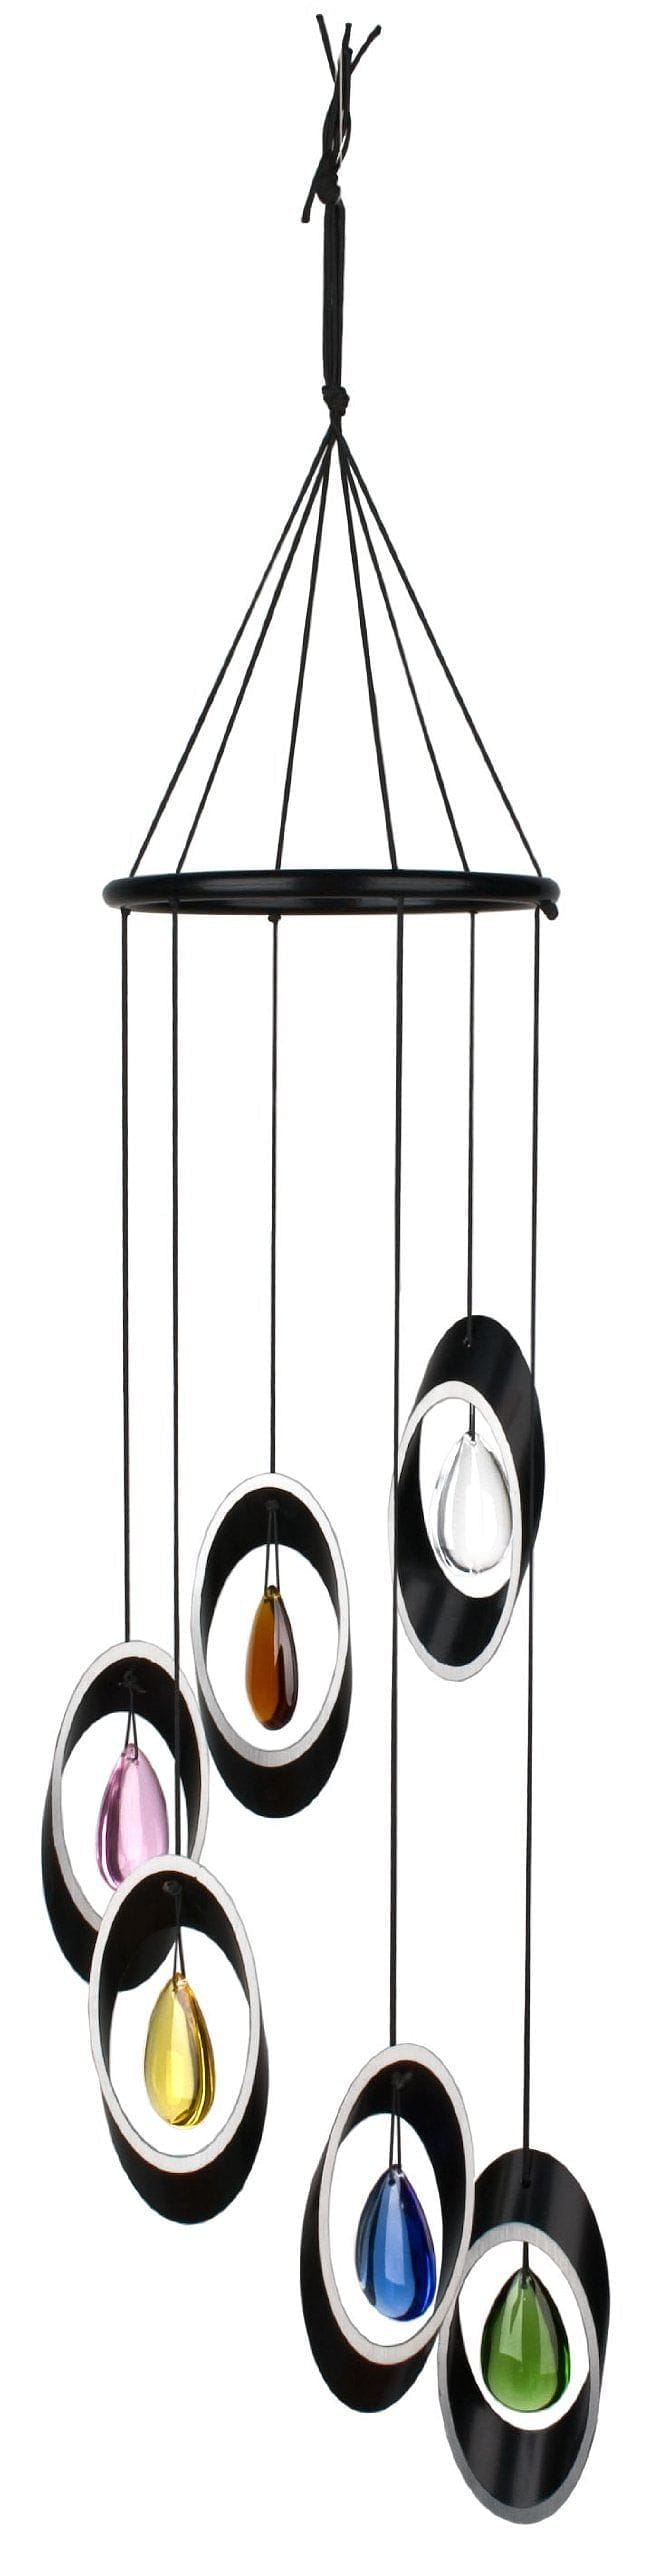 Bellissimo Spiral Chime